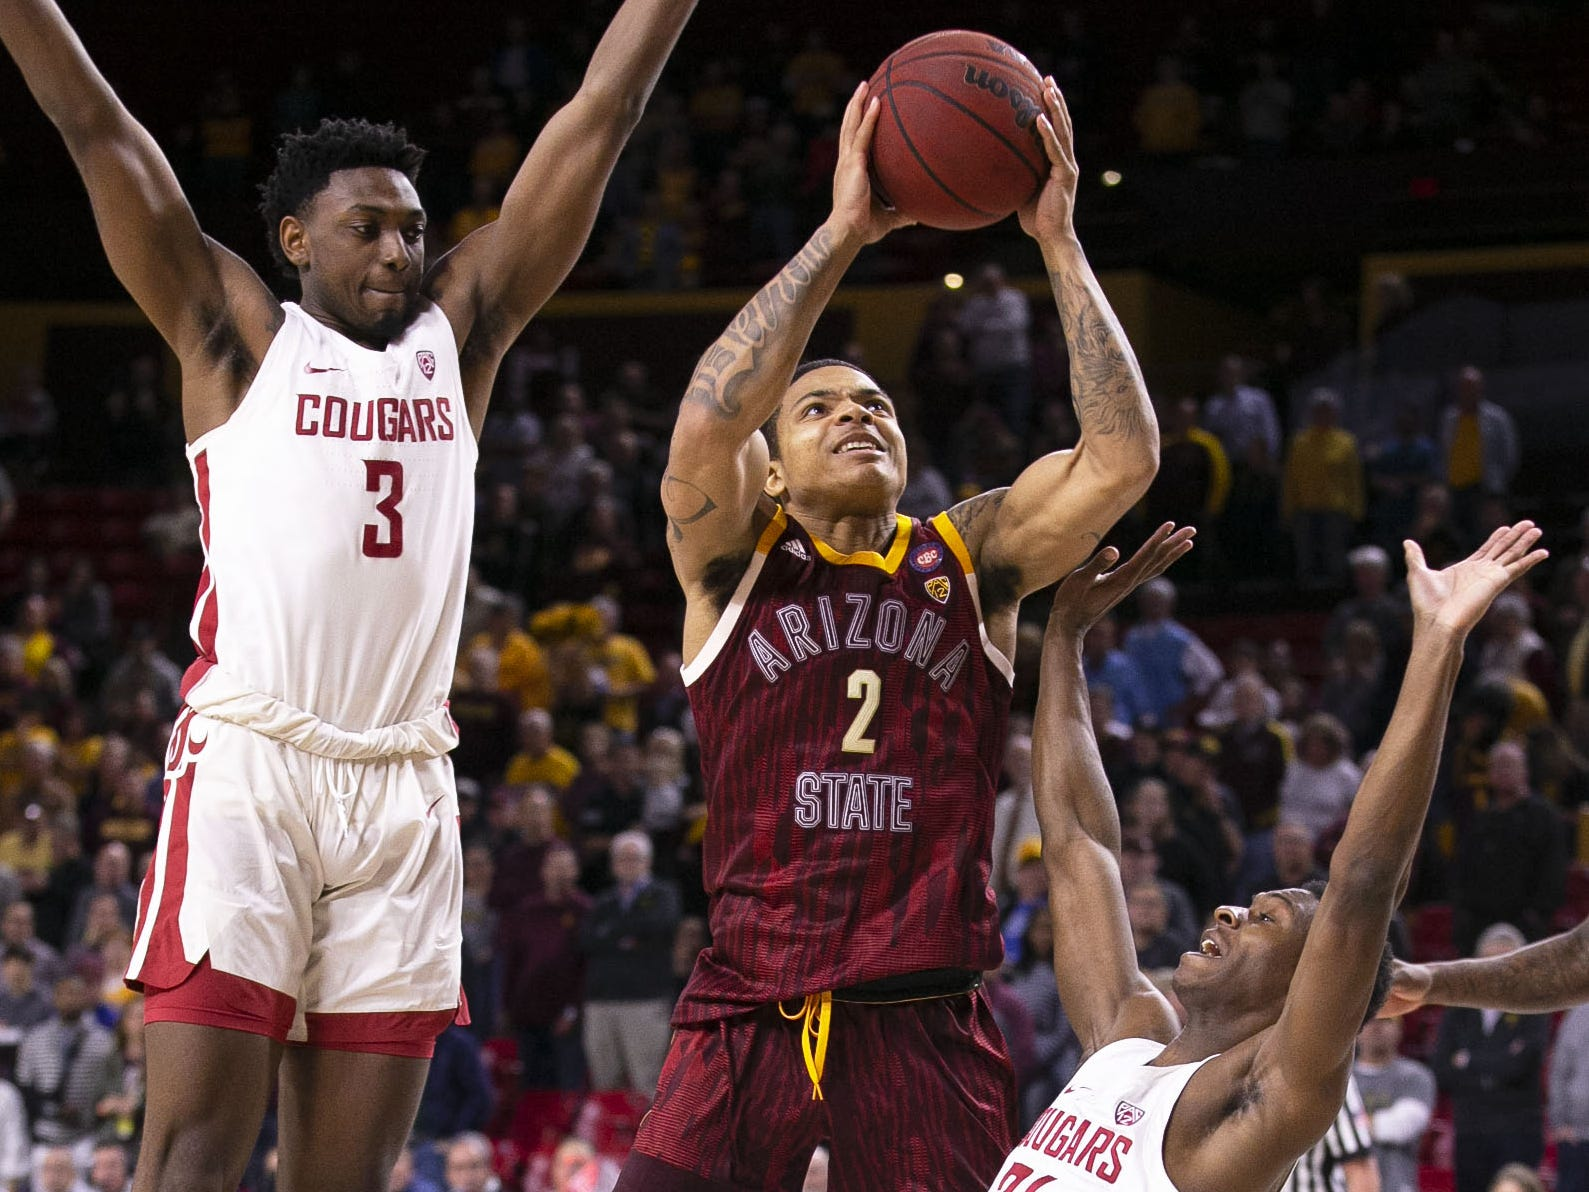 Arizona State Sun Devils guard Rob Edwards (2) is pressured by Washington State Cougars guard Viont'e Daniels (24) in the first half on Feb. 7 at Wells Fargo Arena in Tempe.